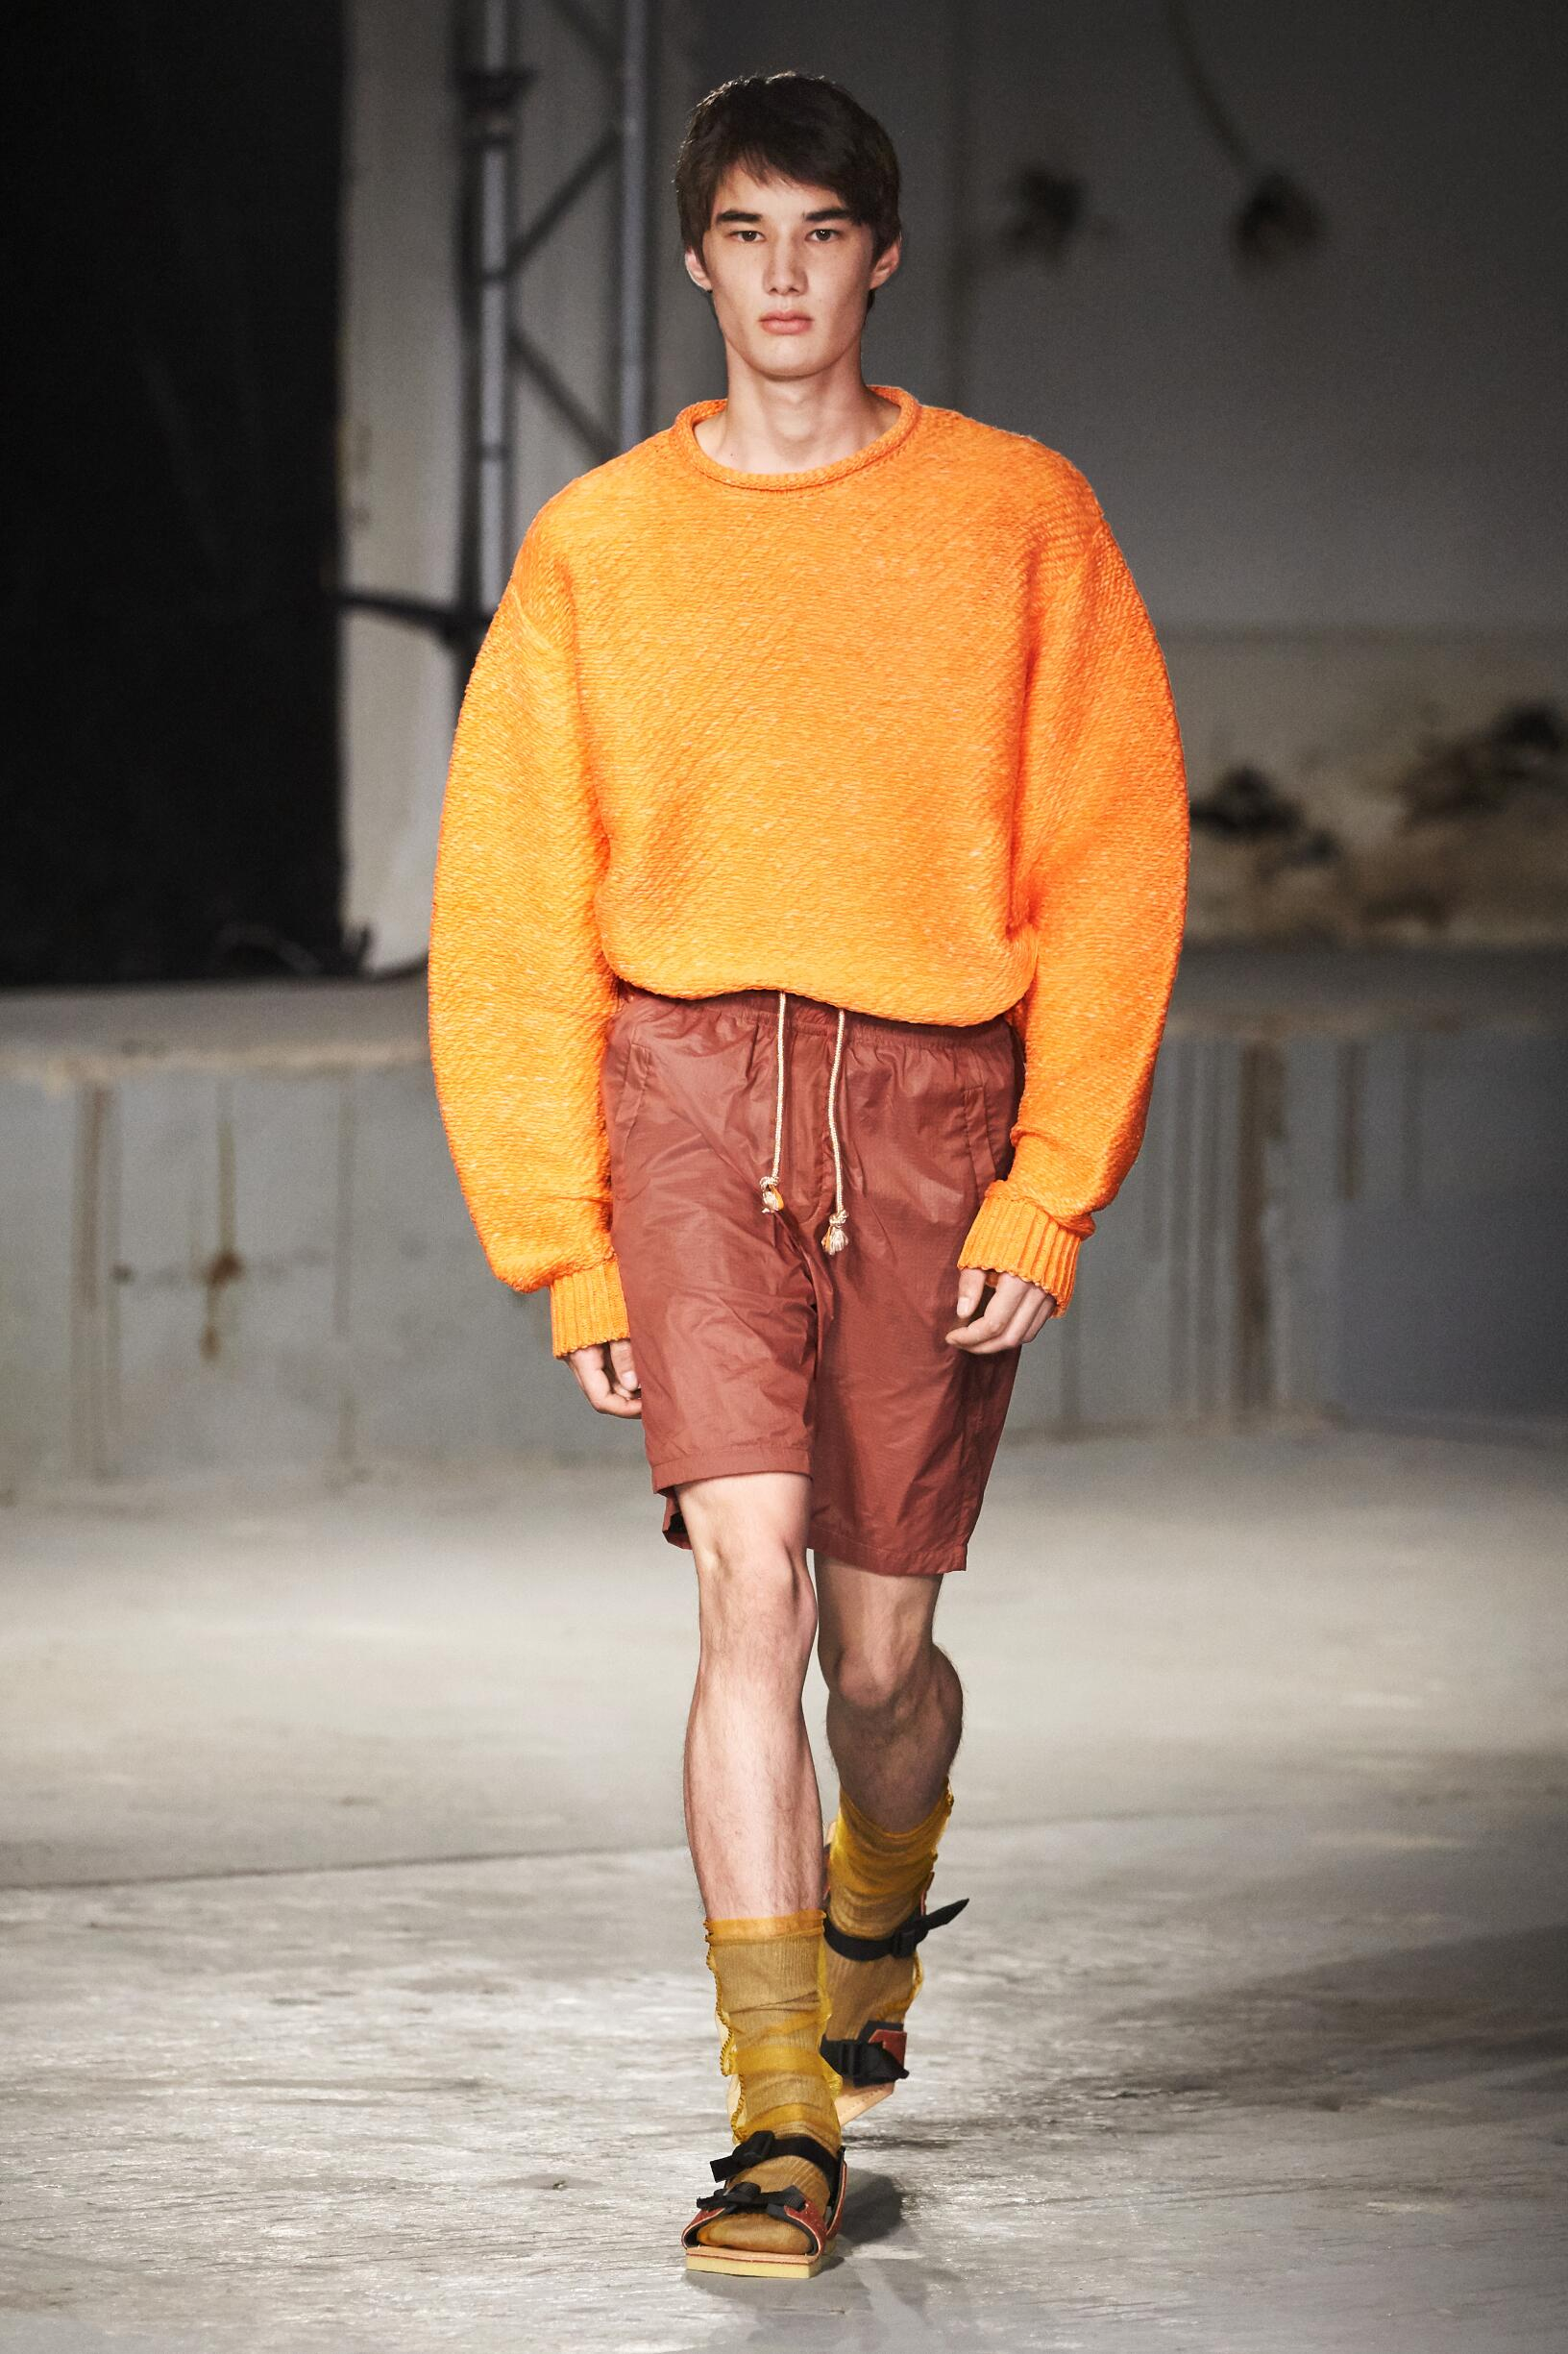 Acne Studios Summer 2019 Catwalk